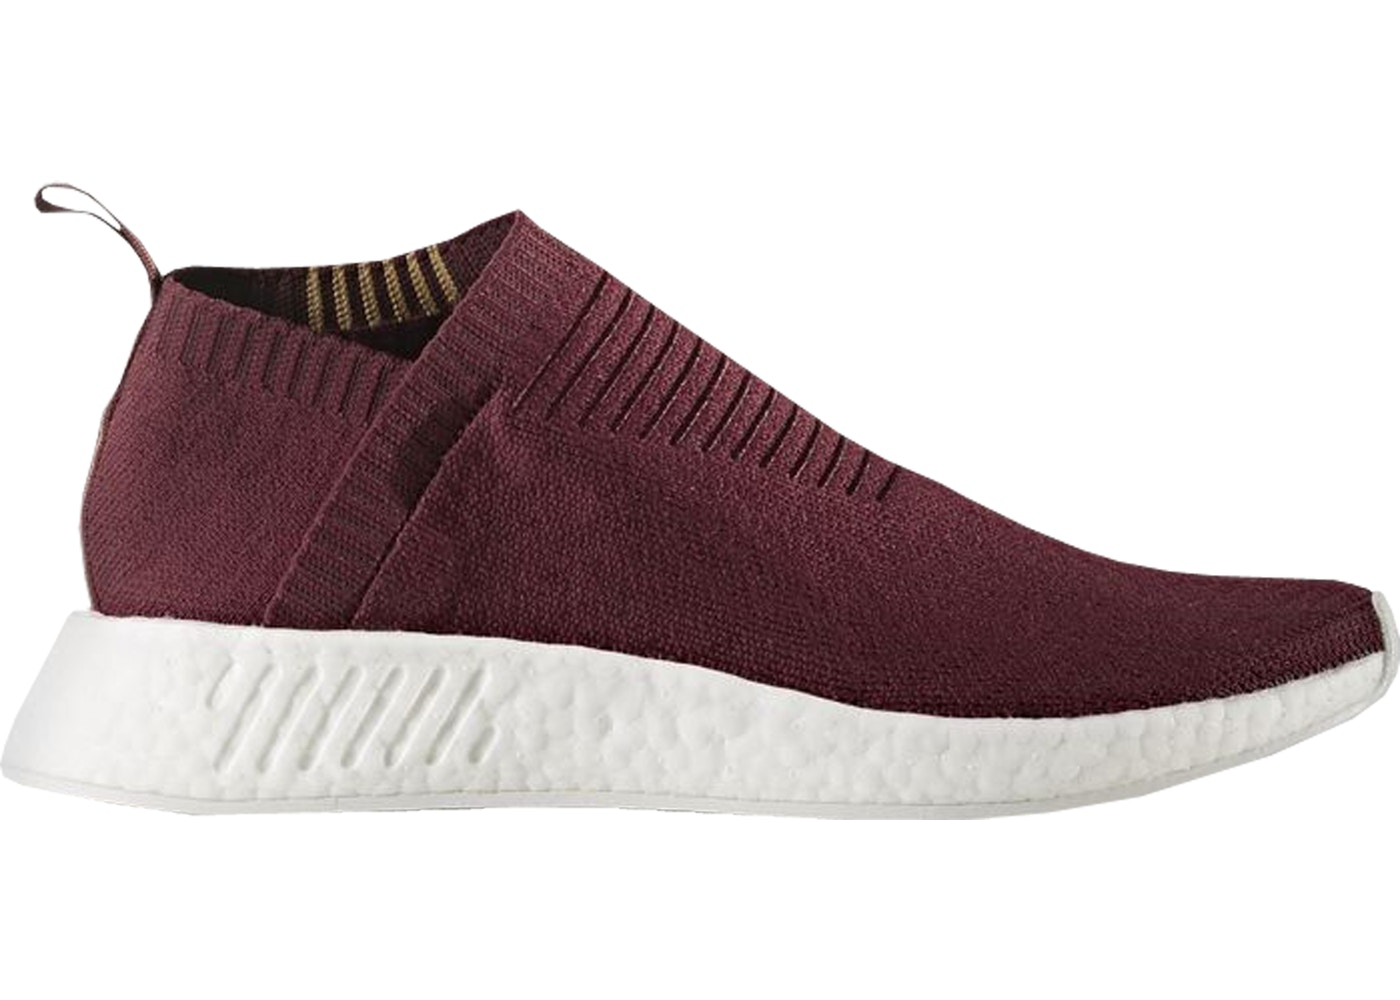 the latest 4f8d9 3eee5 adidas NMD Size 9 Shoes - Volatility